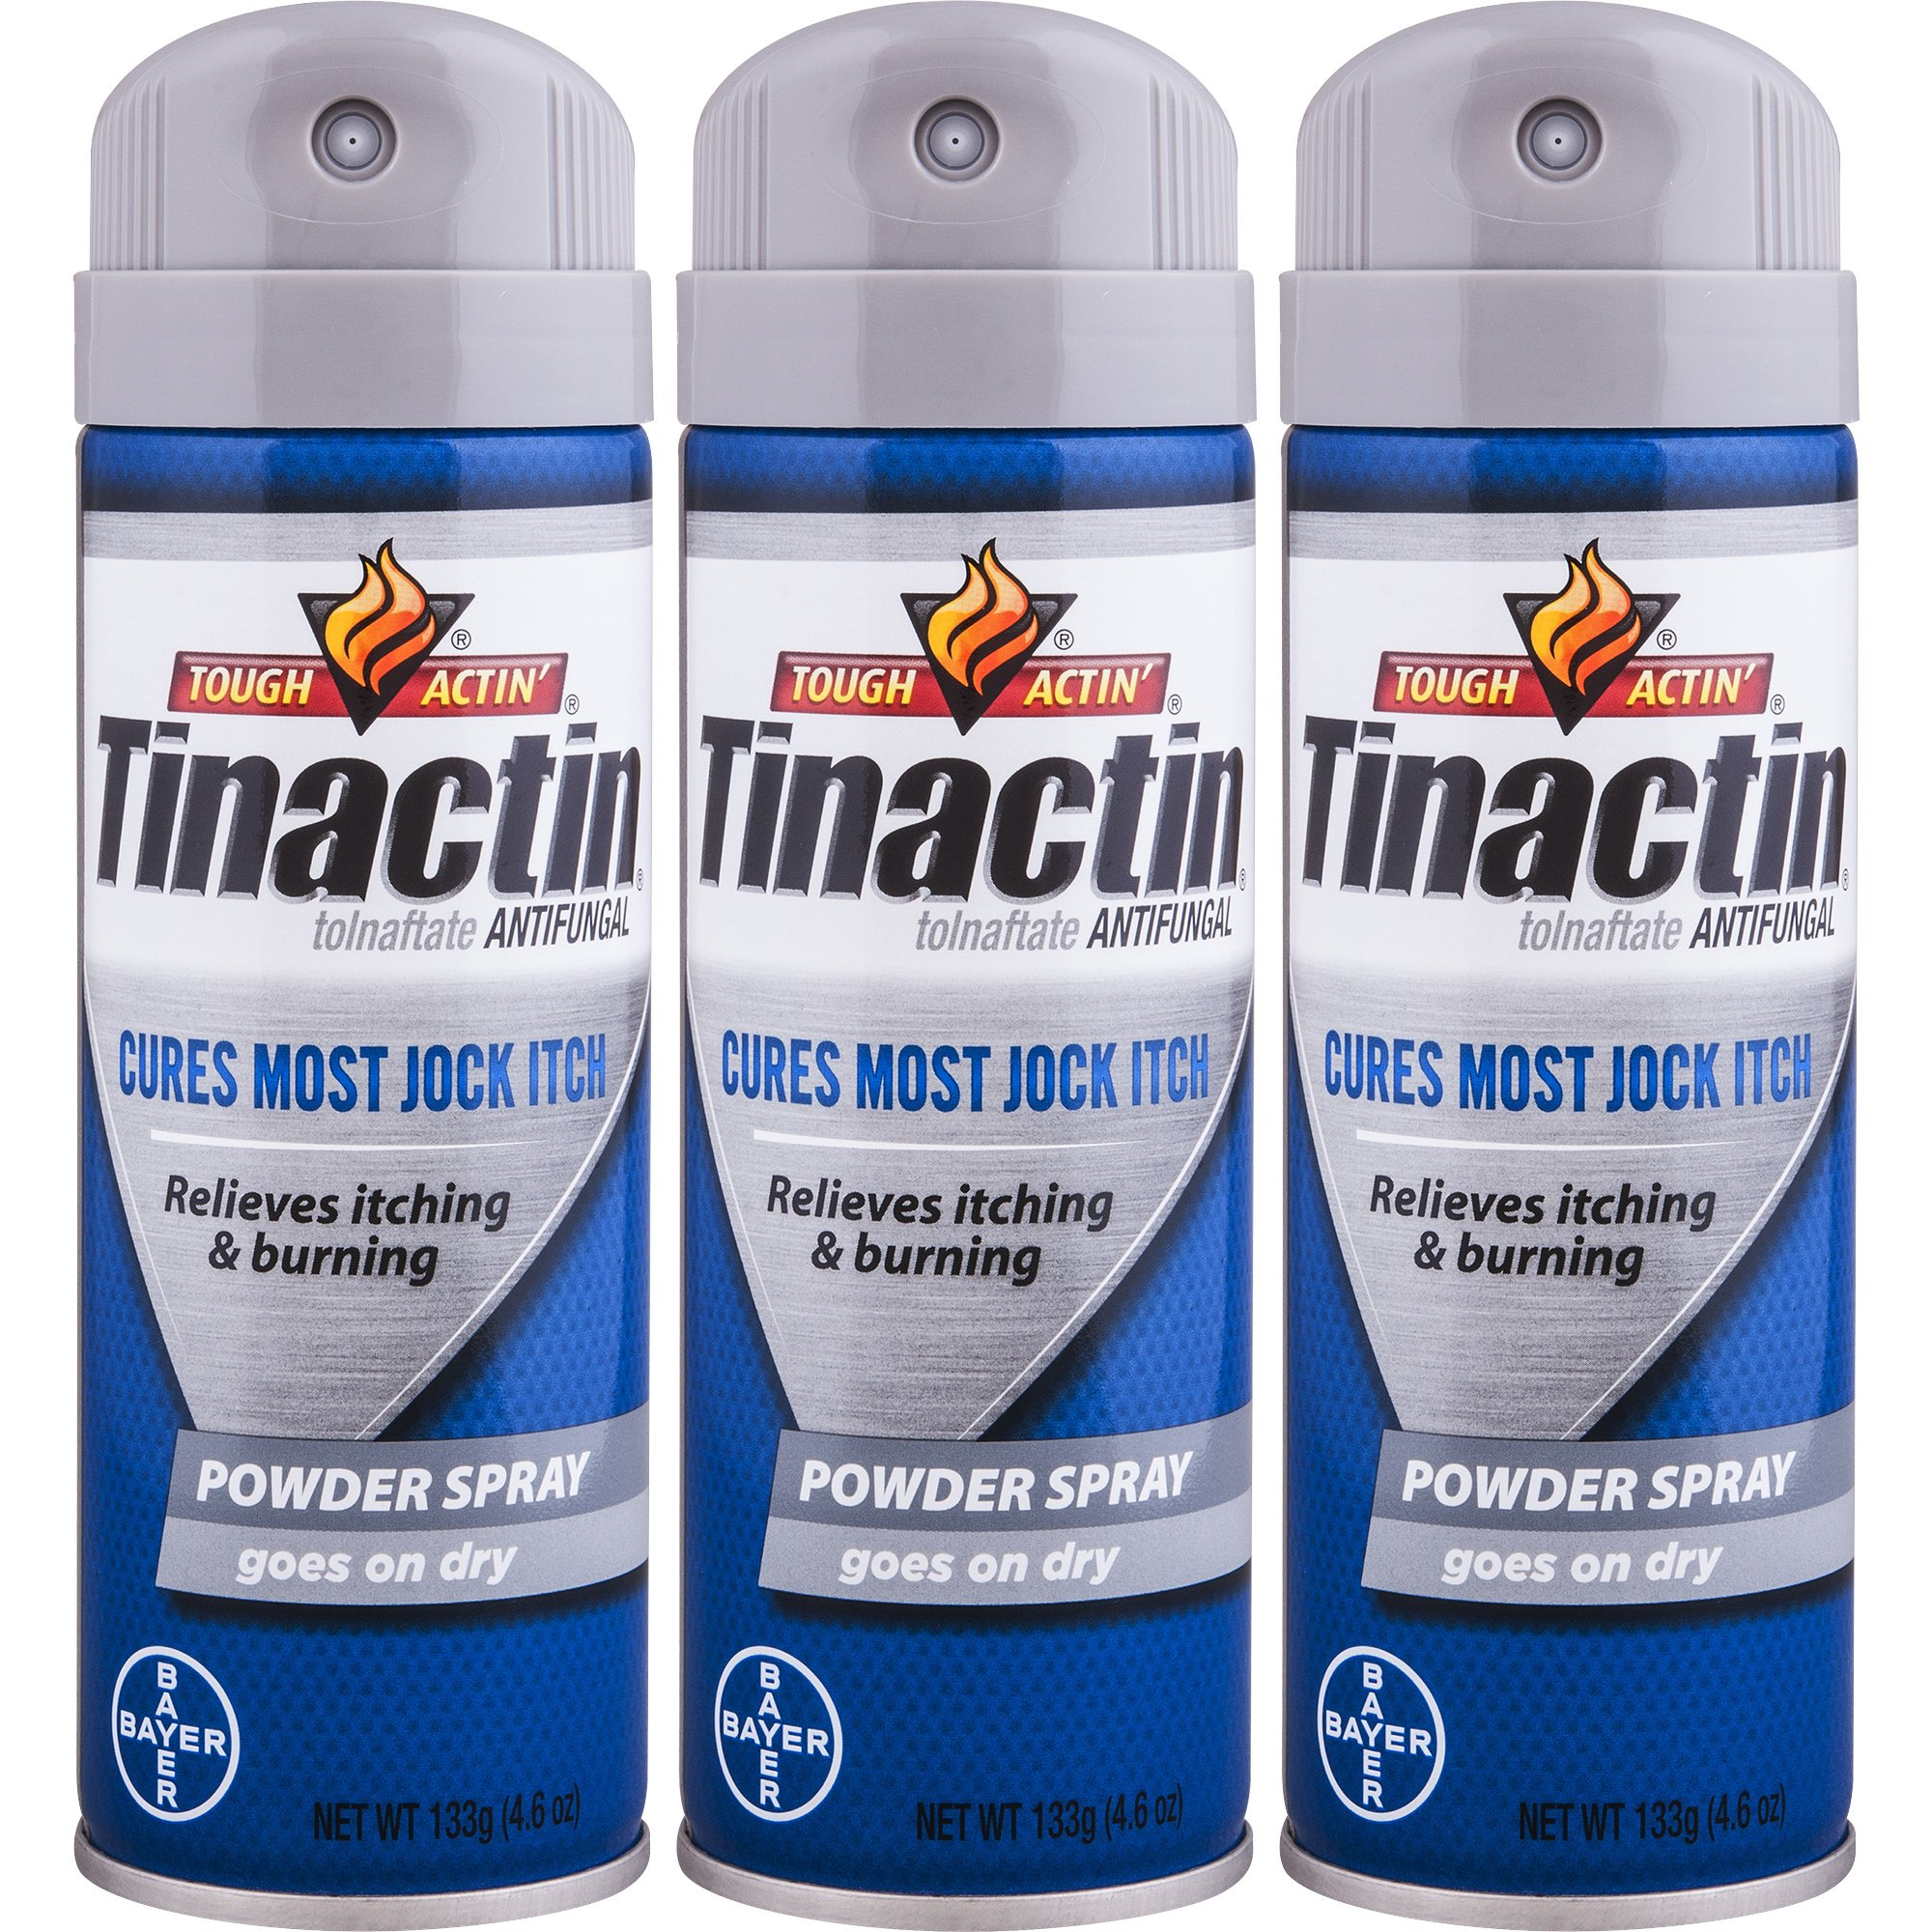 Tinactin Jock Itch Spray Powder,4.6 oz. (Pack of 3) by Tinactin